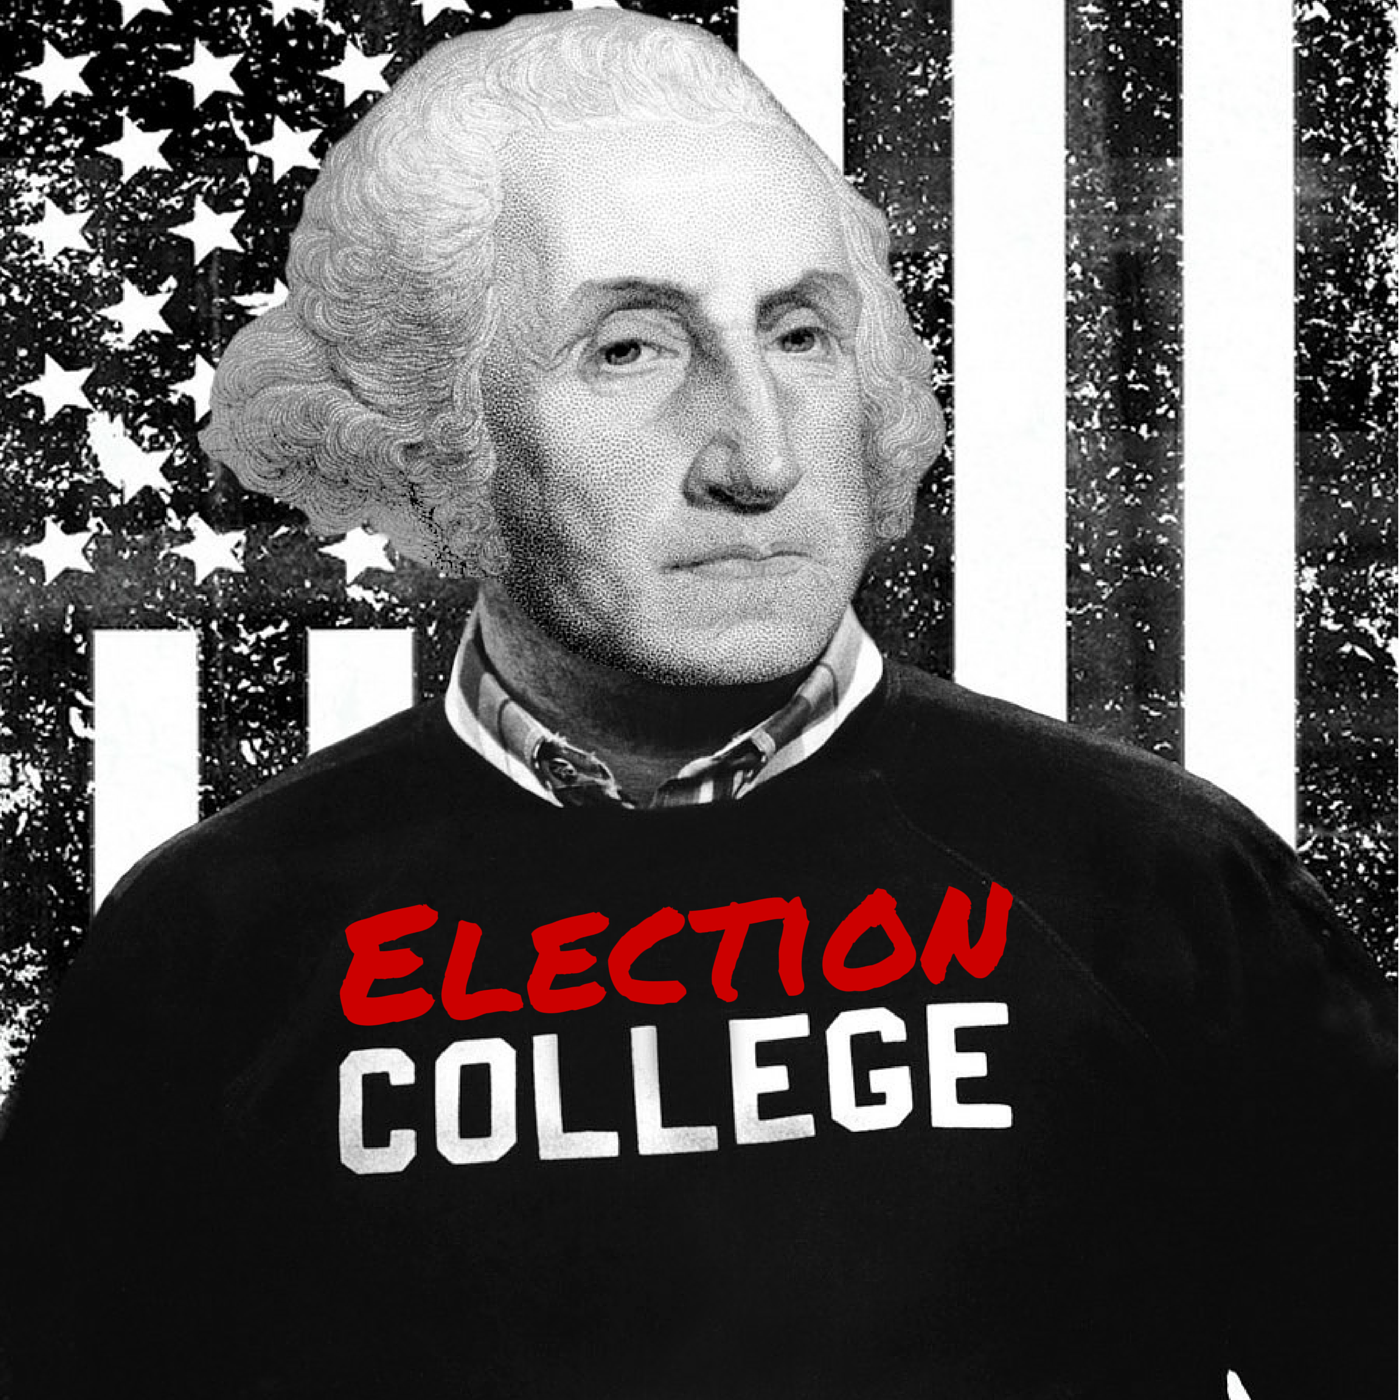 James Buchanan - Part 1 | Episode #196 | Election College: United States Presidential Election History